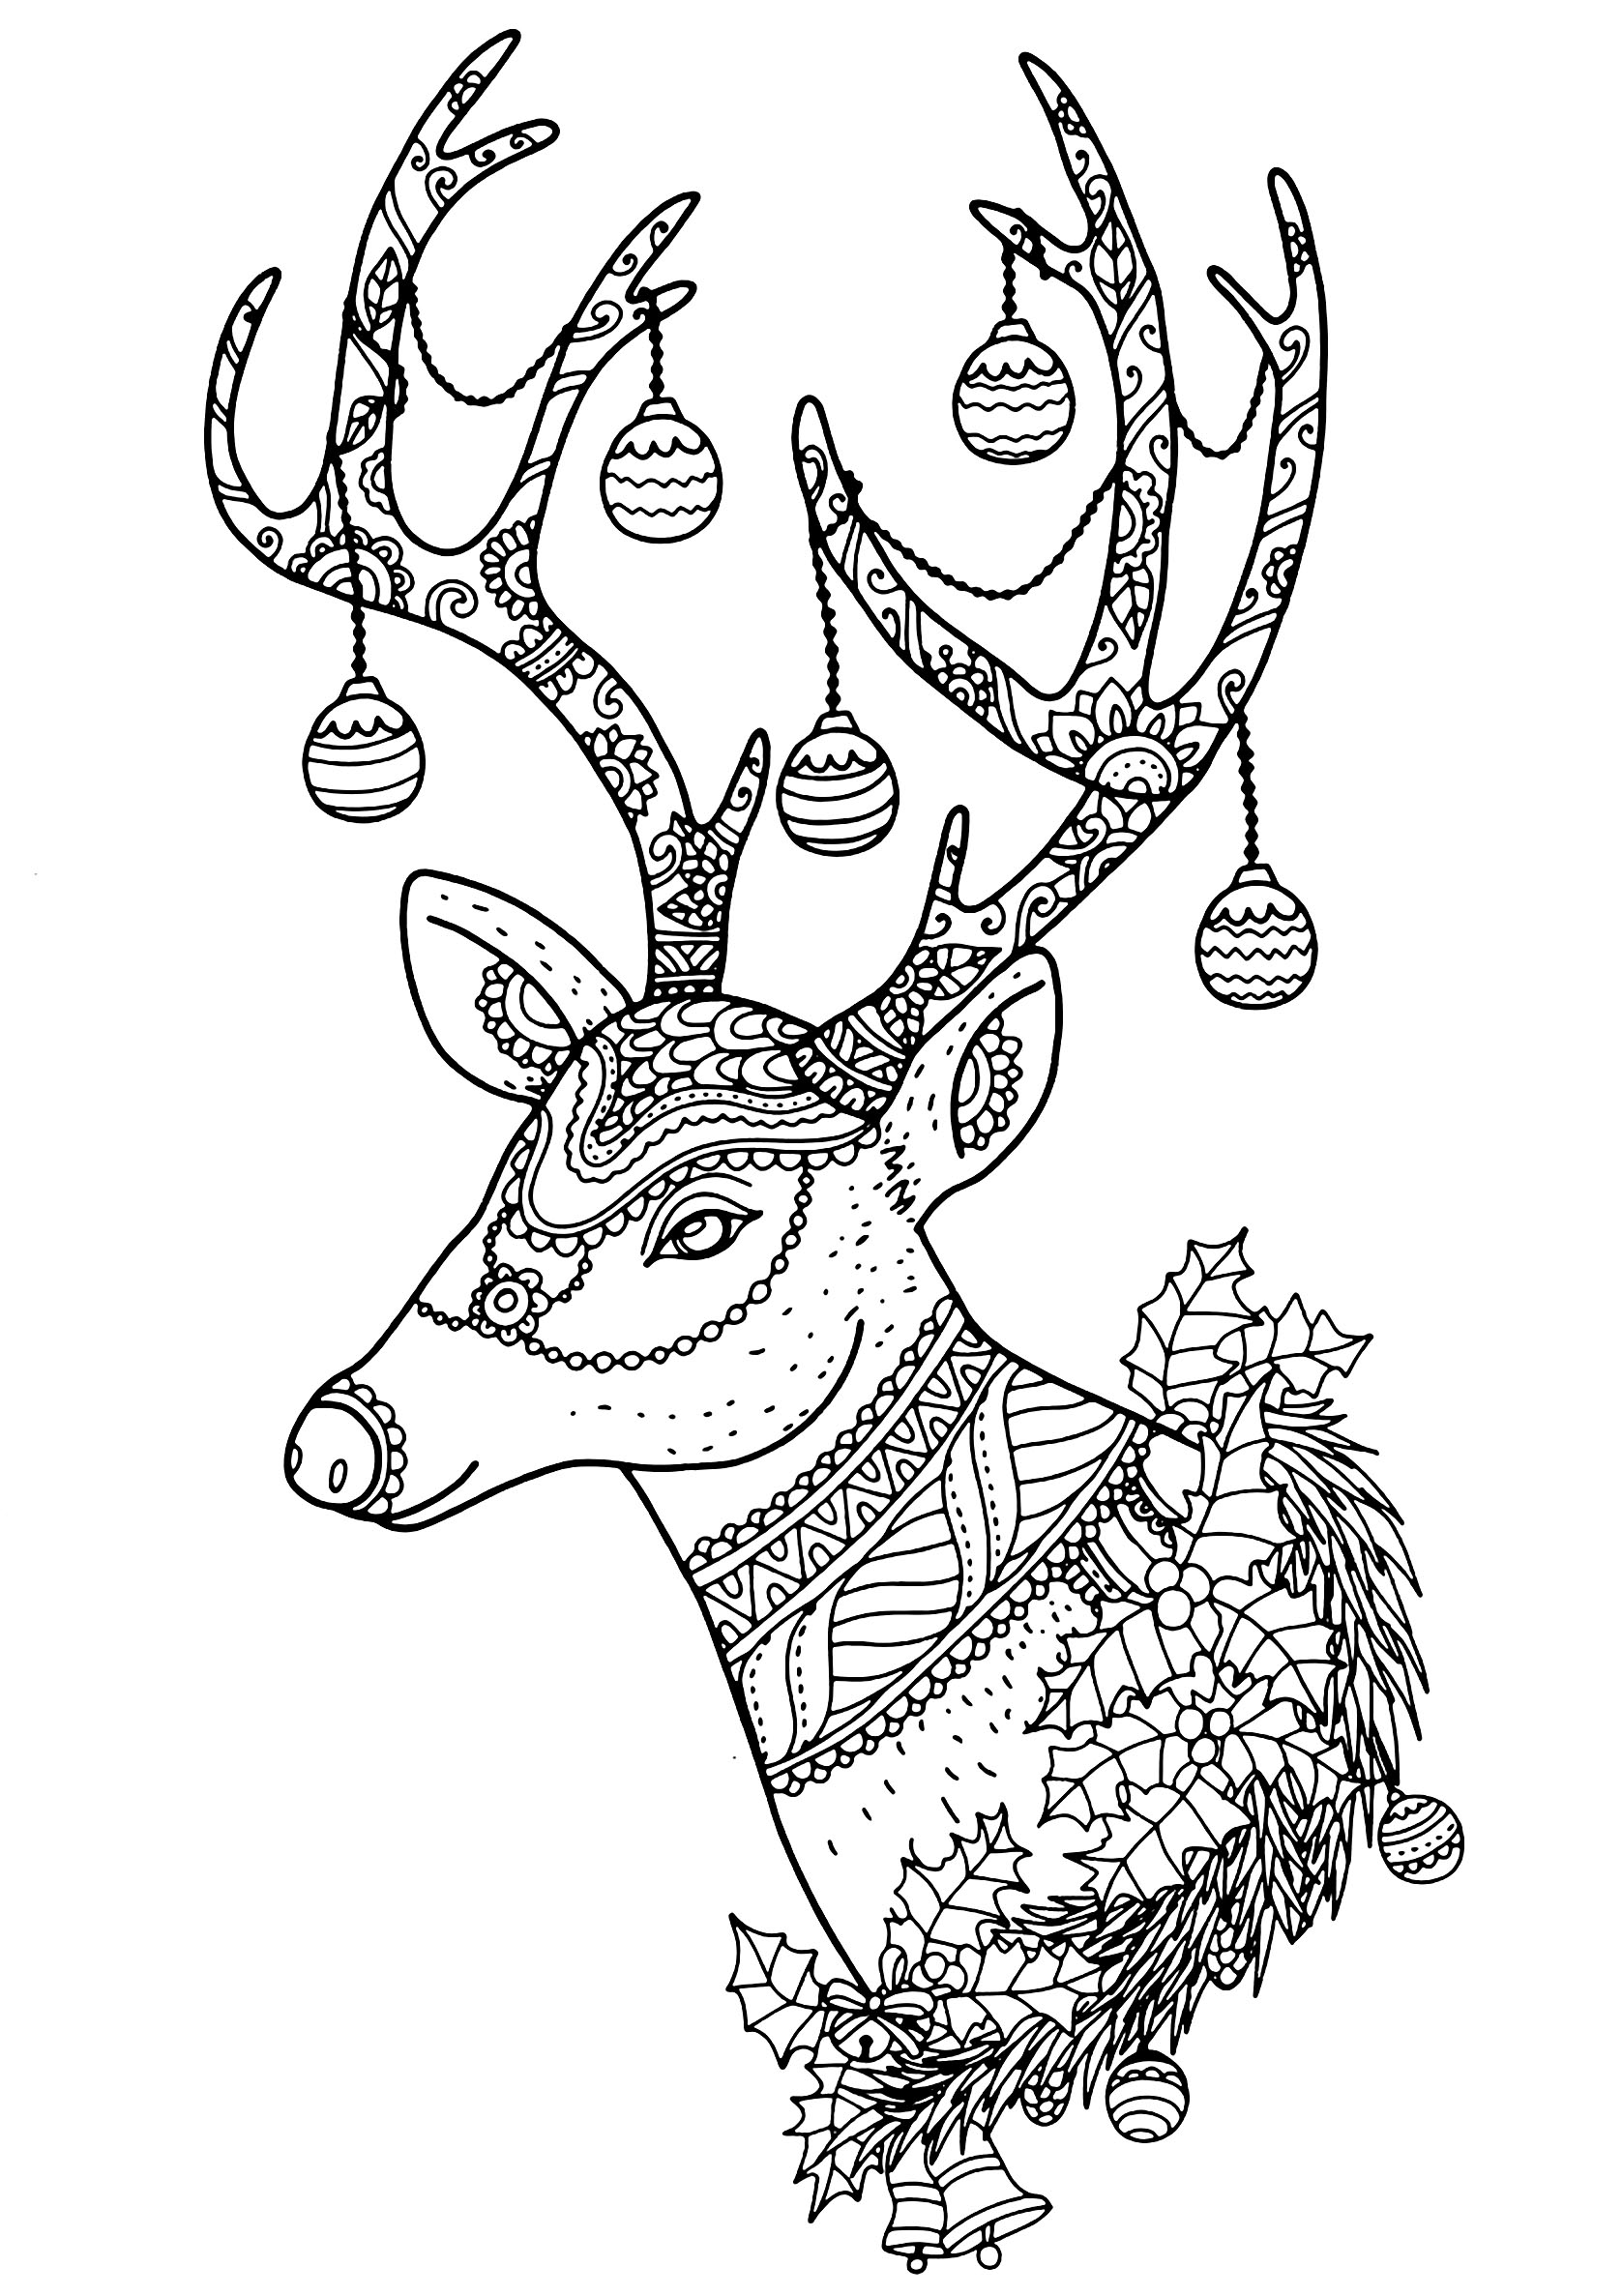 christmas coloring pages reindeer christmassantasreindeercoloringpages 9 crafts and christmas reindeer coloring pages